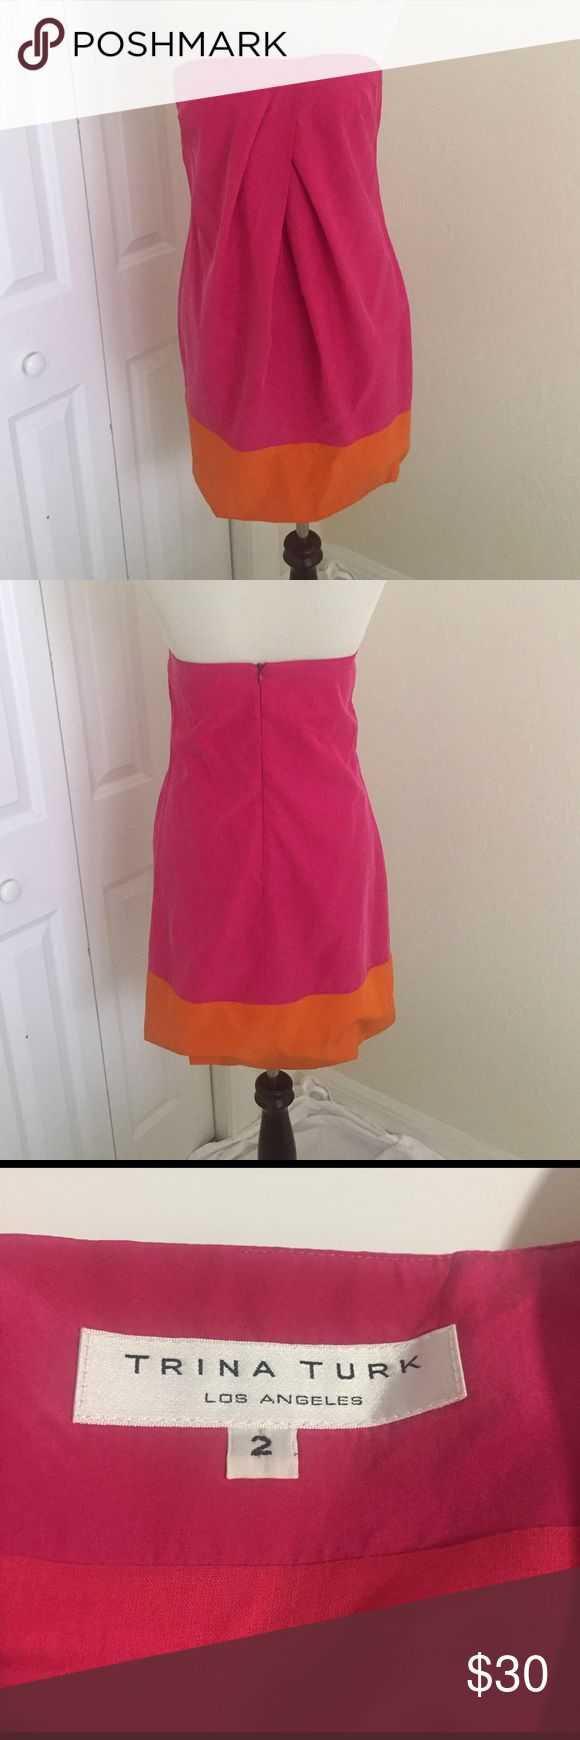 Trina Turk strapless dress This is a strapless Trina Turk dress. Hot pink with an orange stripe around the bottom. 51% silk, 49% cotton. Trina Turk Dresses Midi